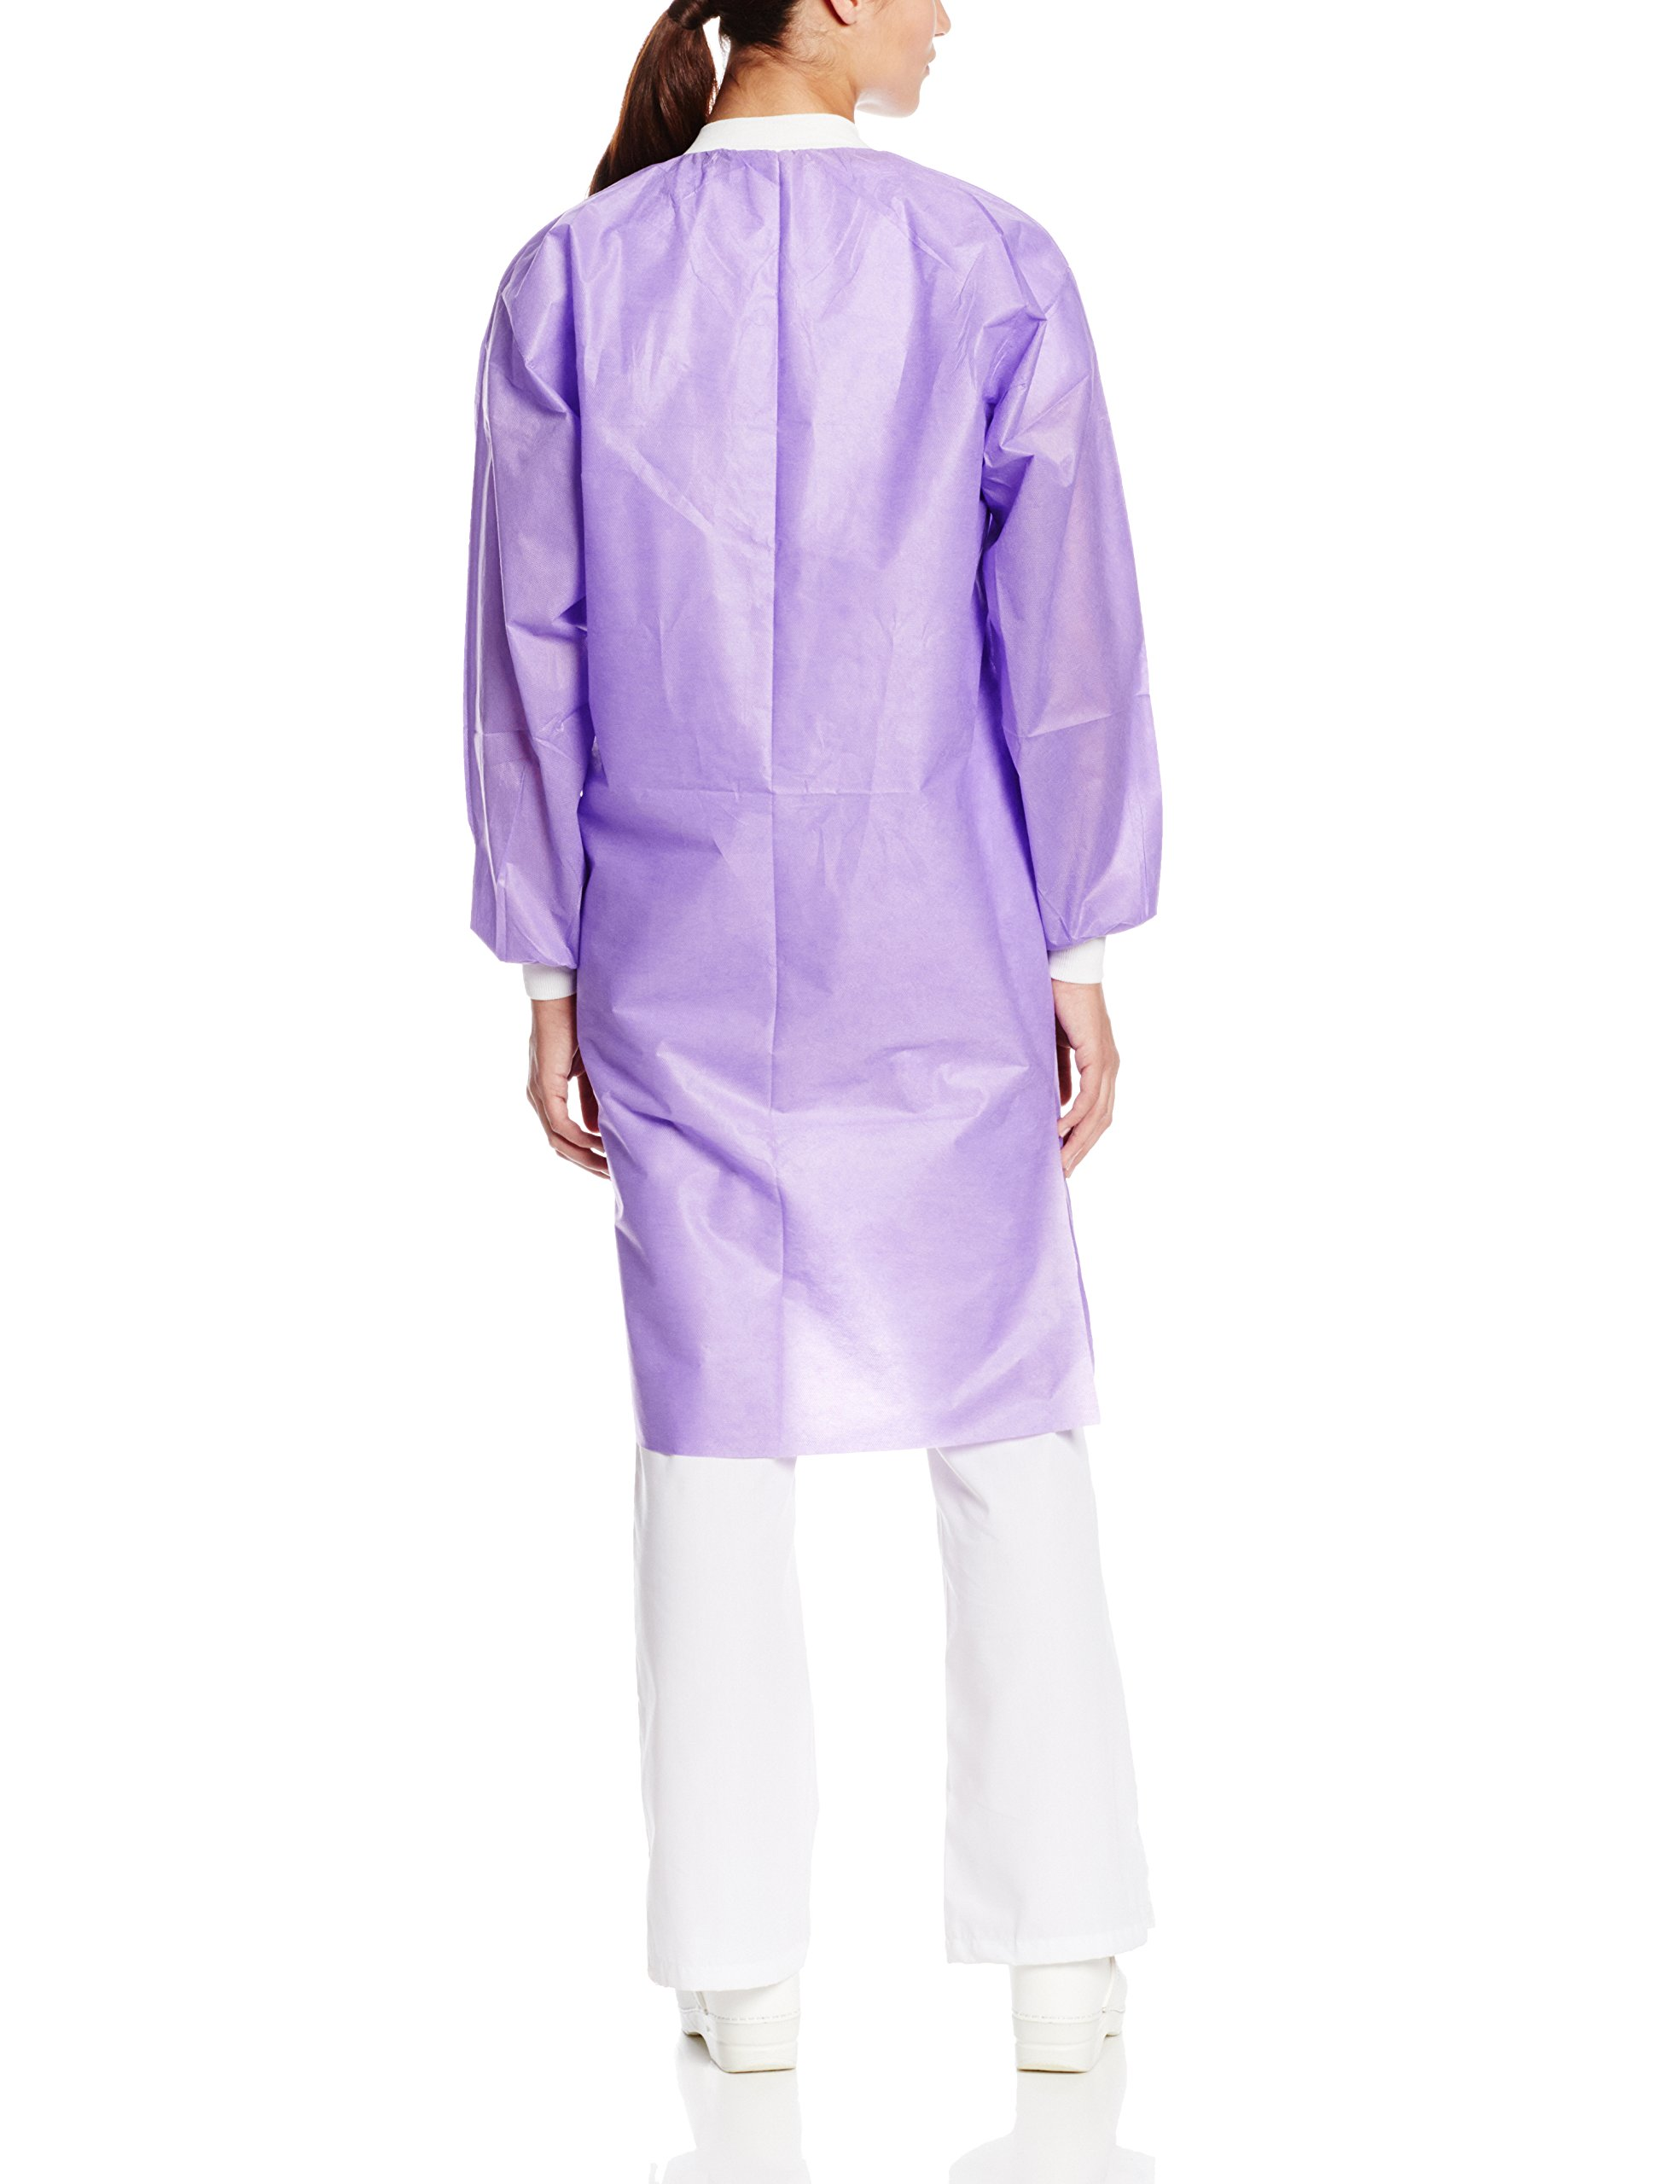 ValuMax 3560PPL Easy Breathe Cool and Strong, No-Wrinkle, Professional Disposable SMS Knee Length Lab Coat, Purple, L, Pack of 10 by Valumax (Image #2)